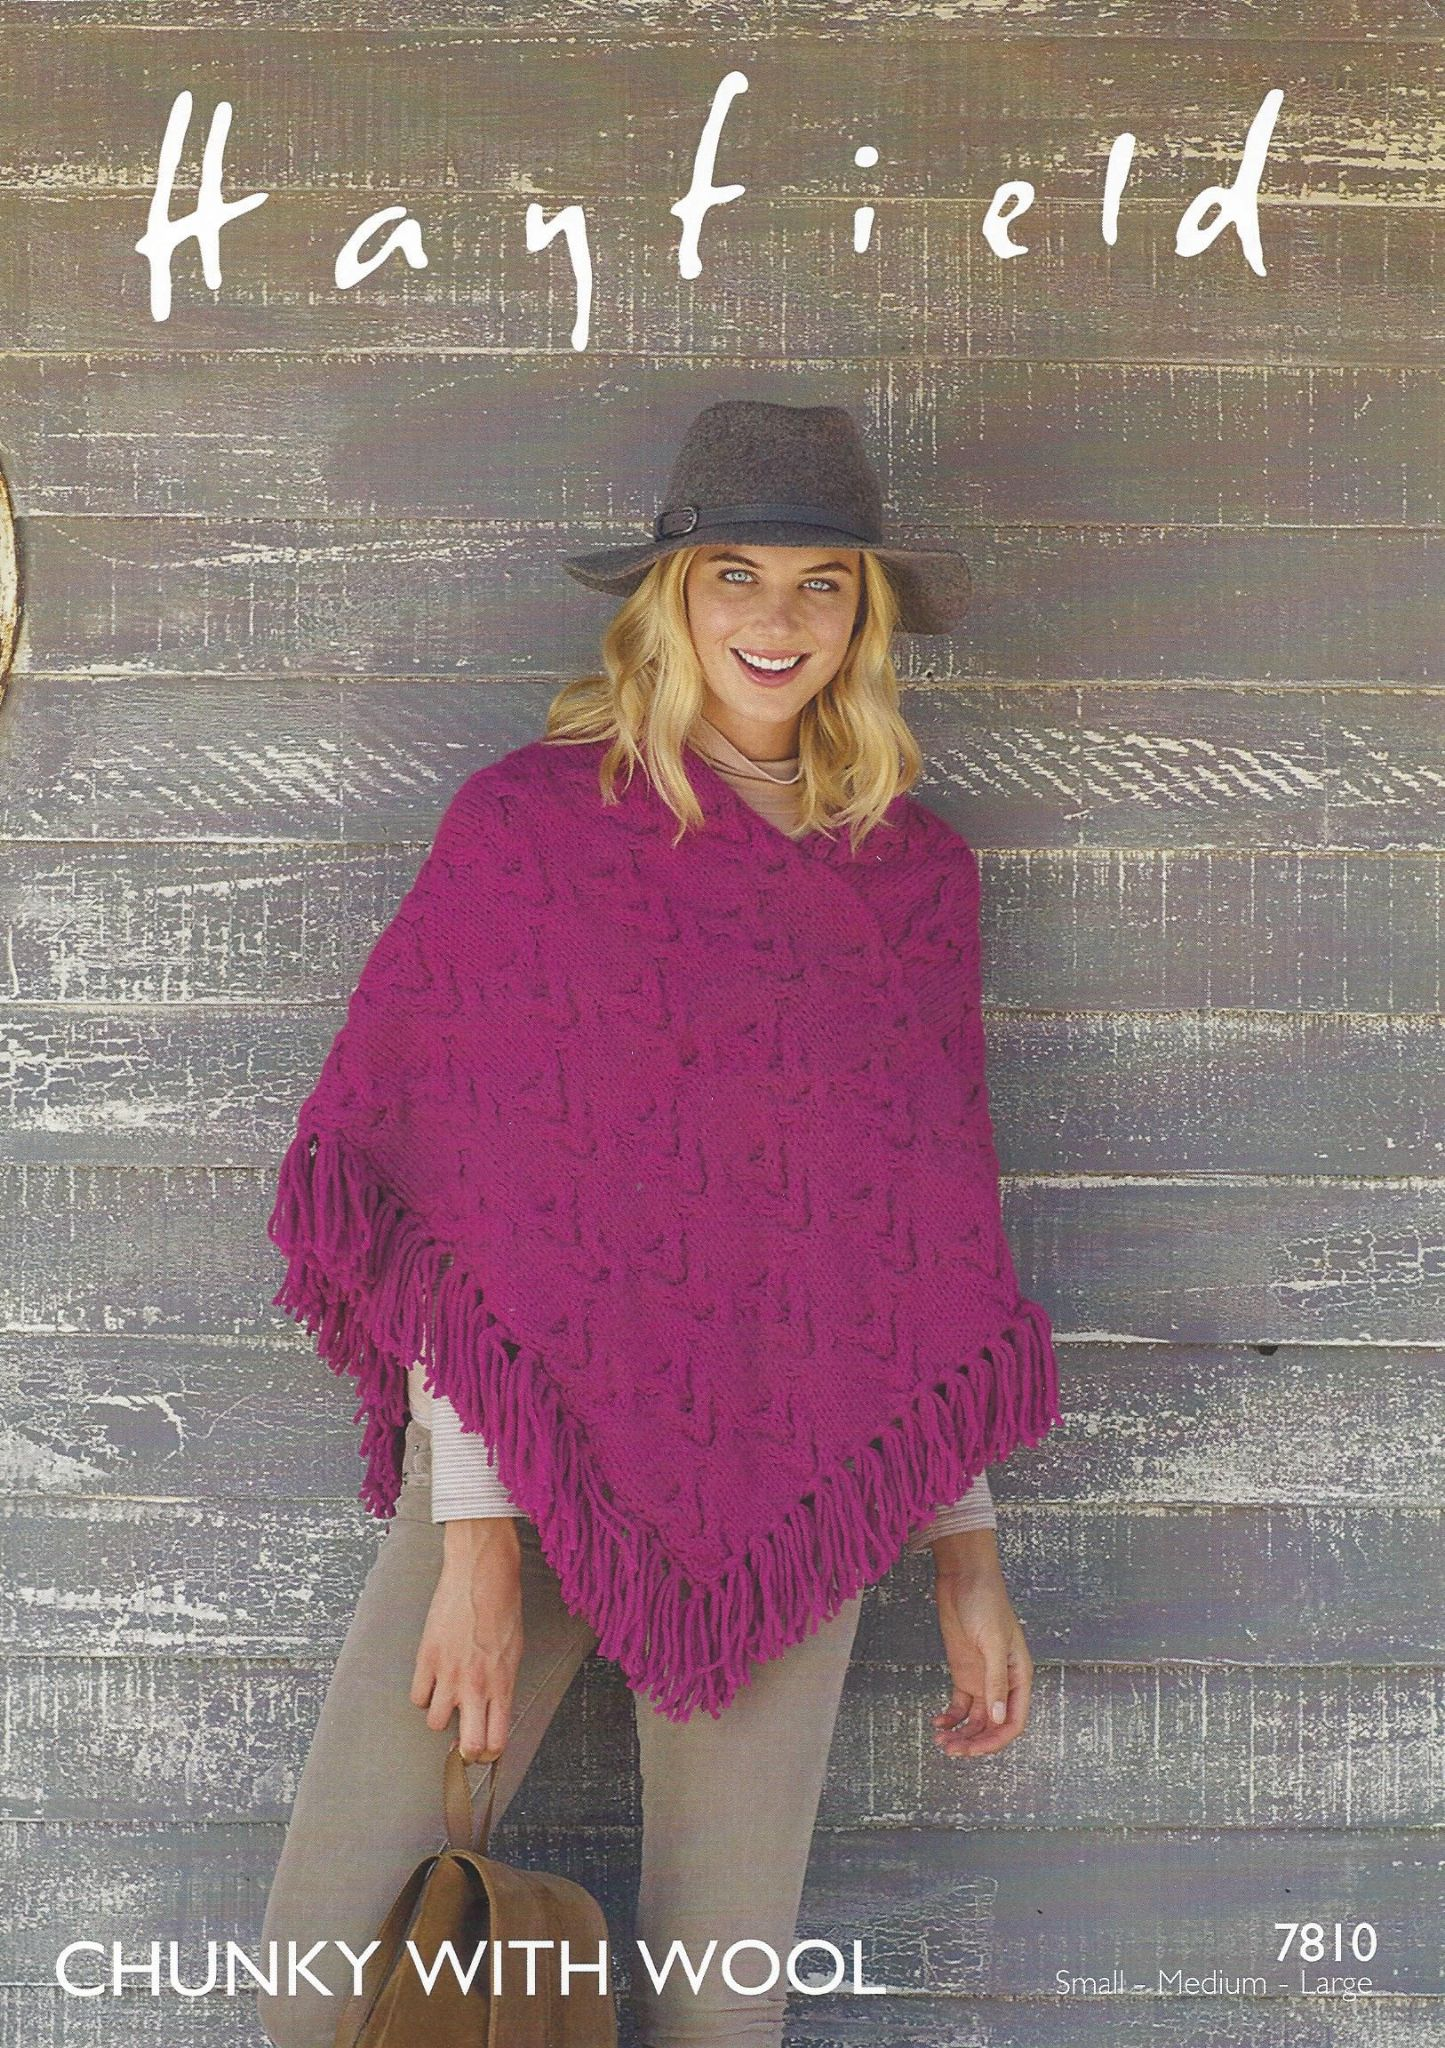 Hayfield Chunky with Wool - 7810 Poncho Knitting Pattern